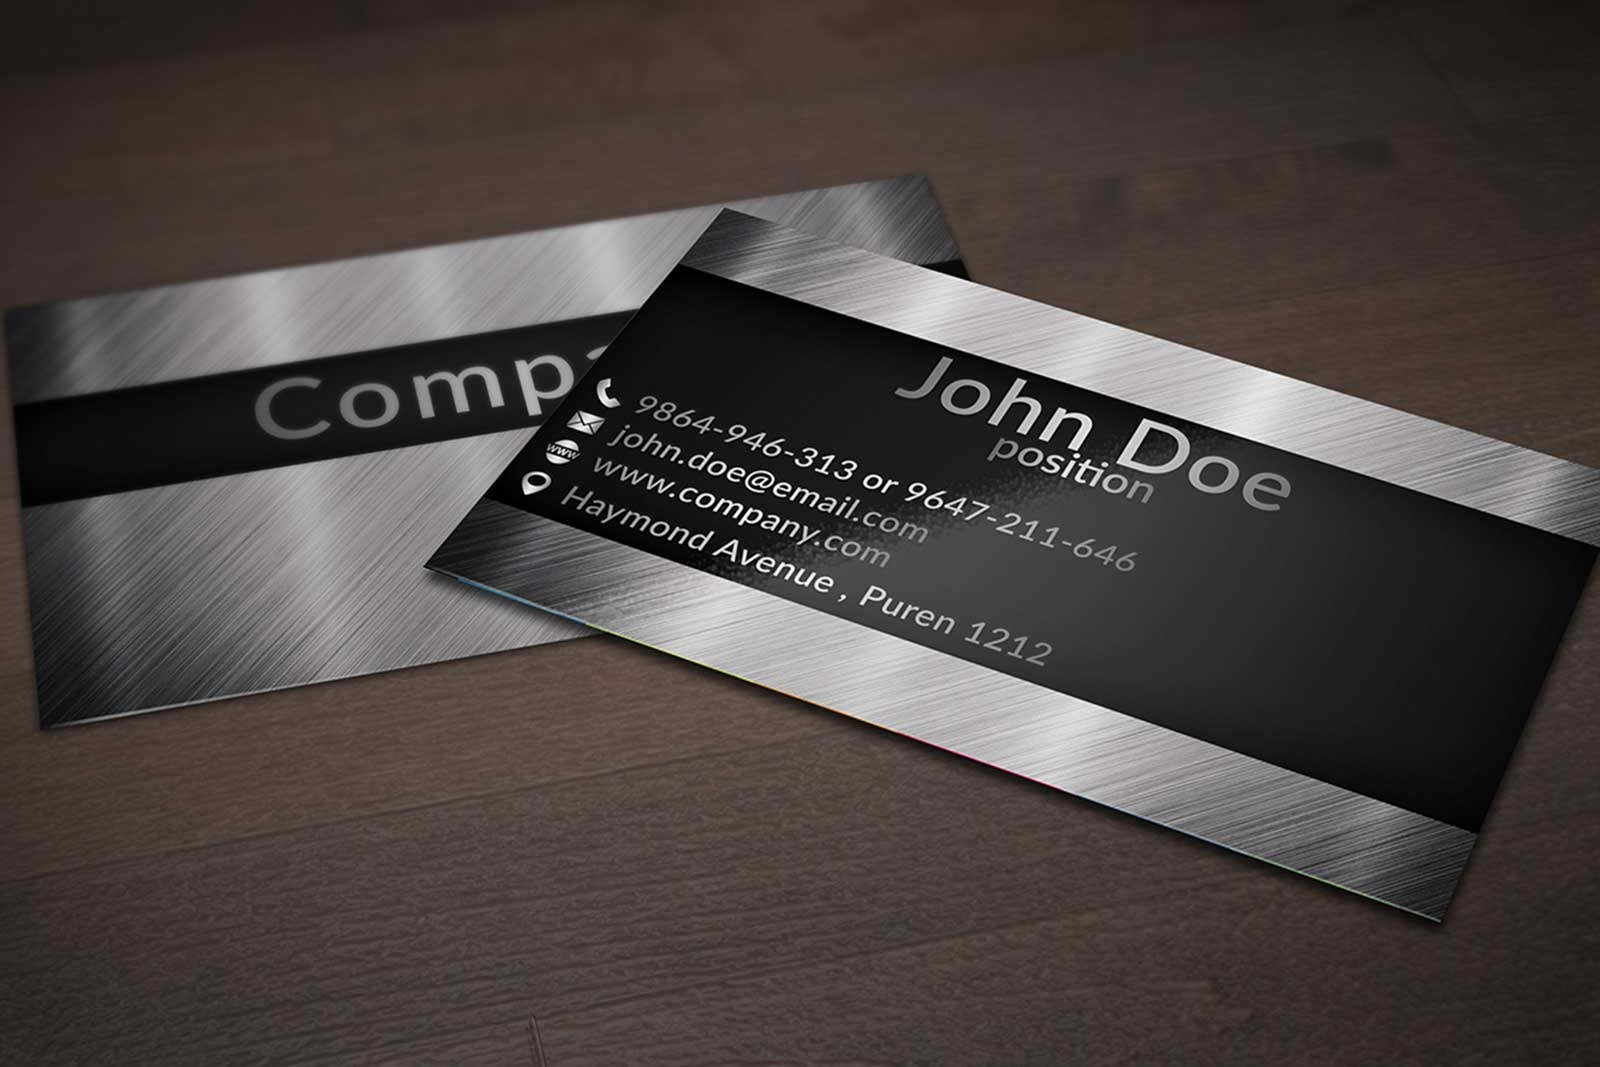 40 unique stylish psd corporate business card designs for free creative business card design on brushed background wajeb